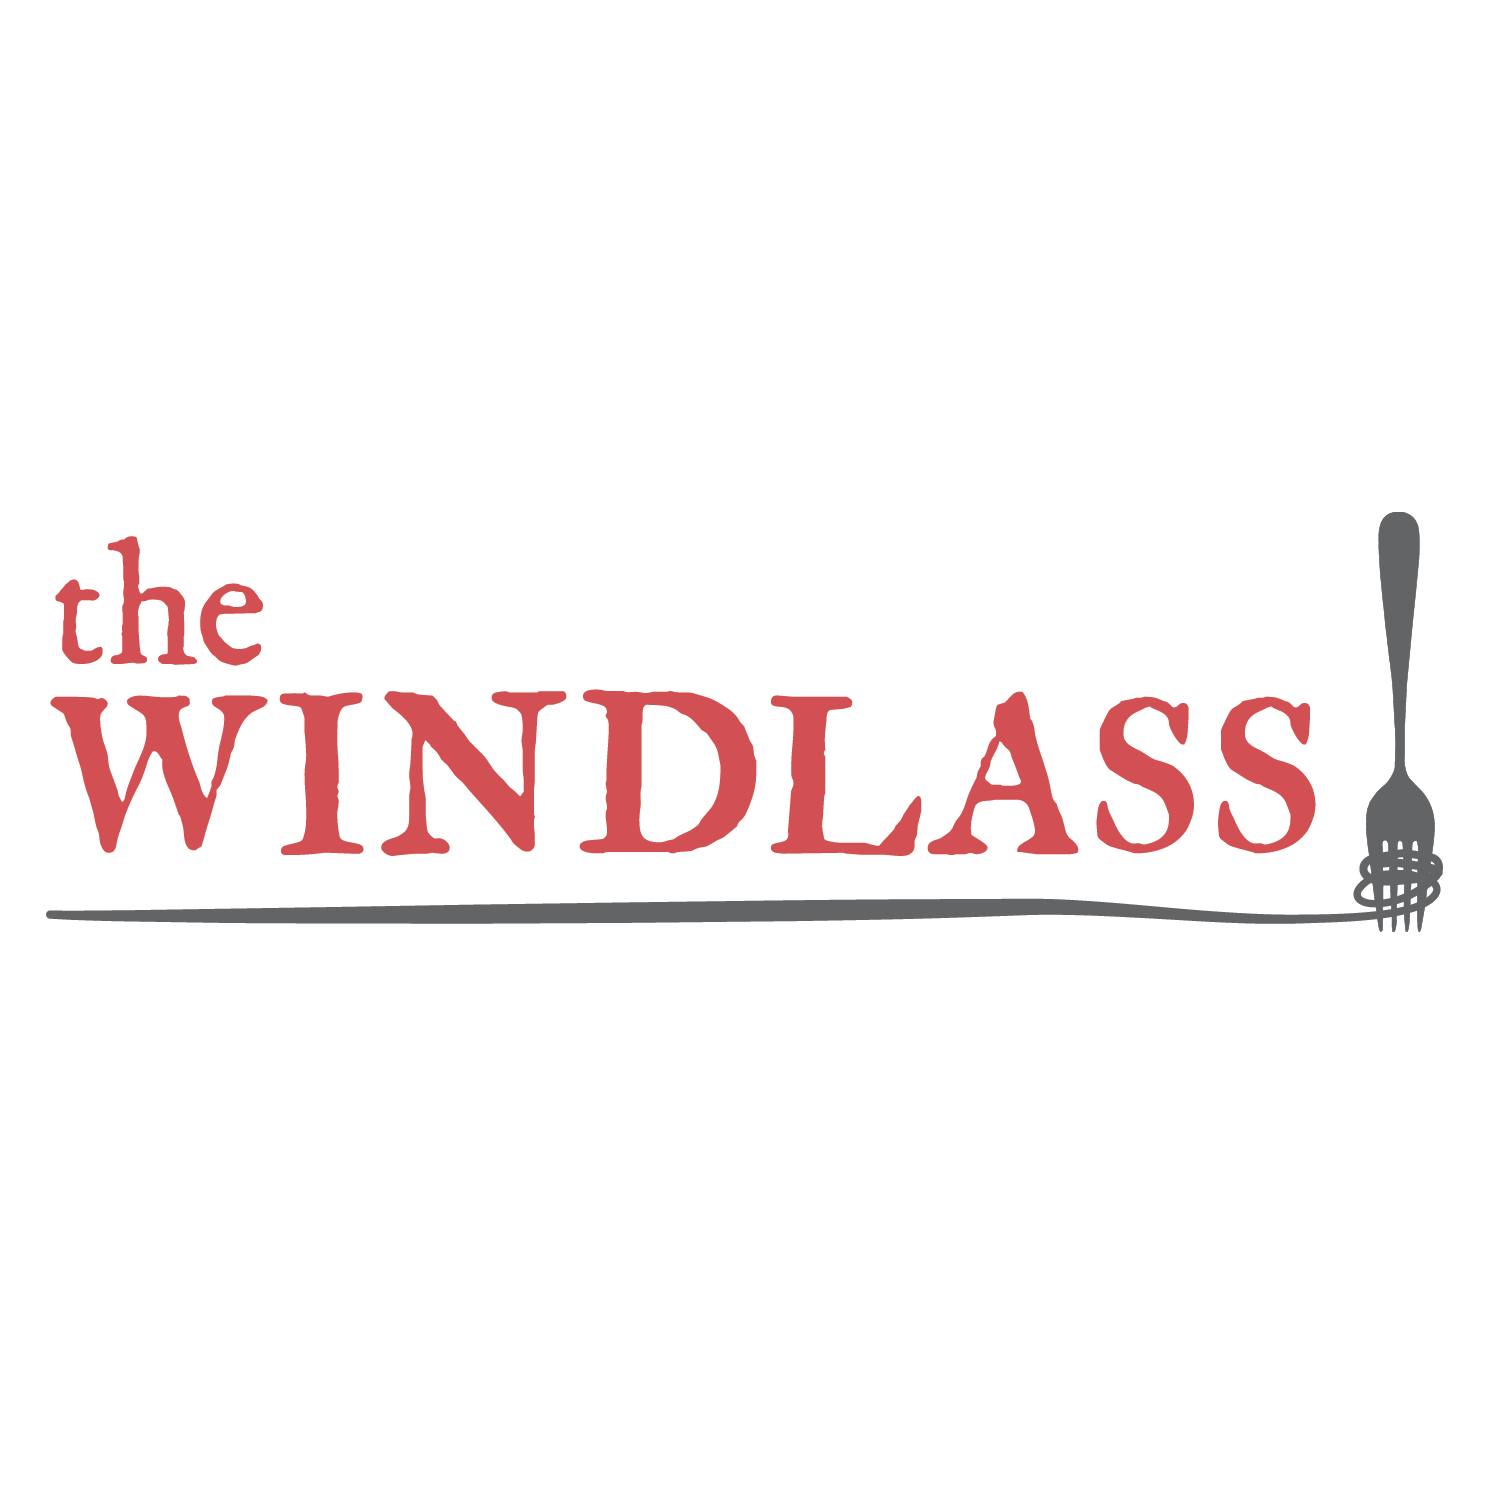 The Windless